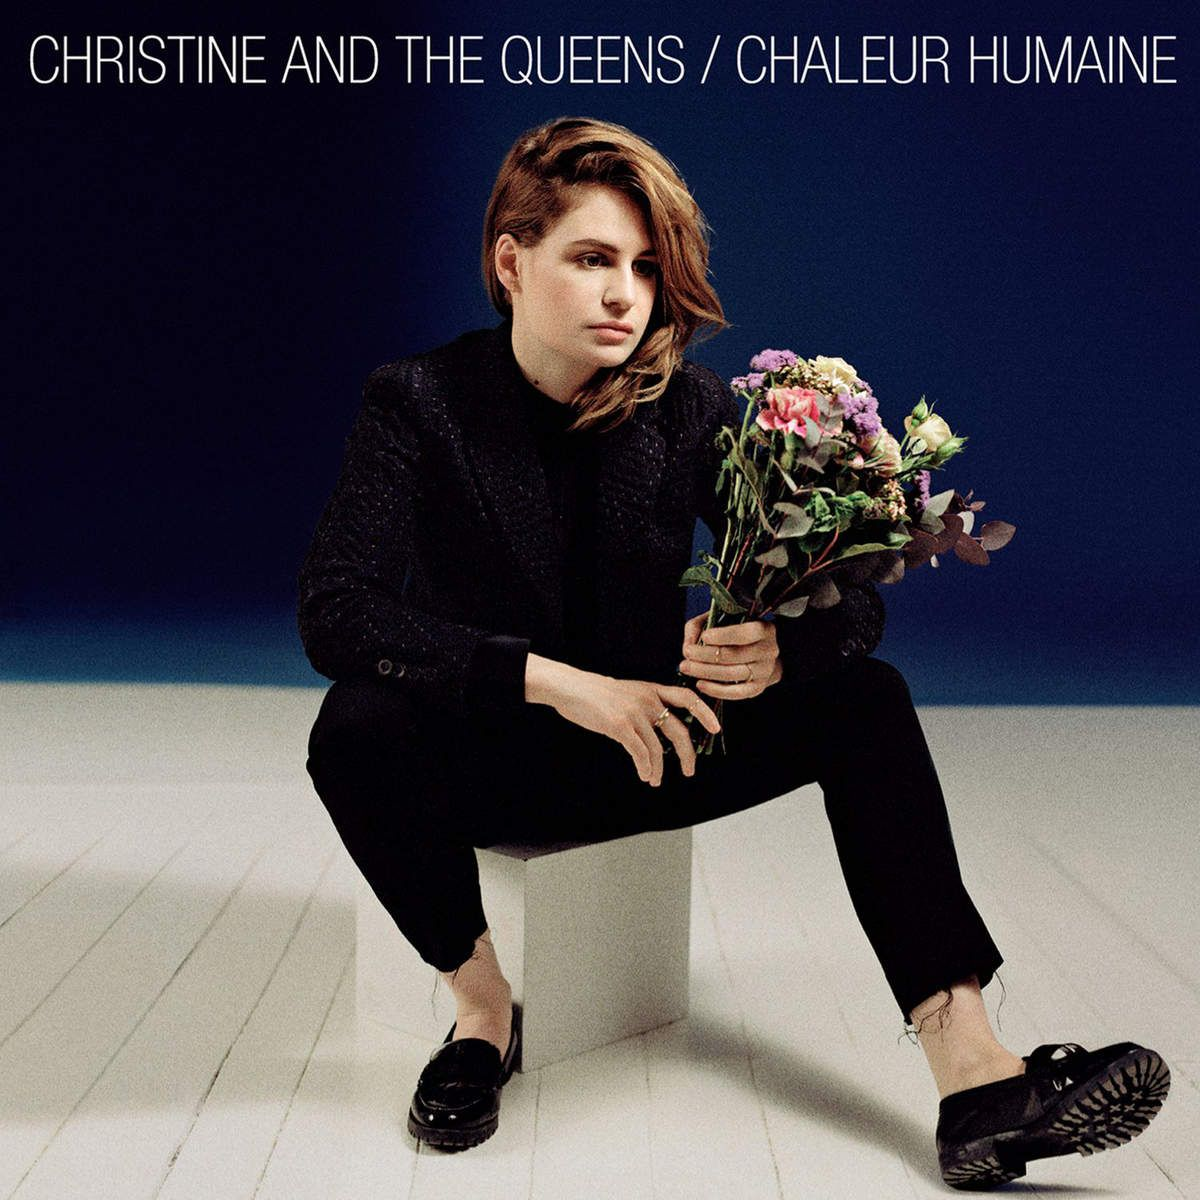 Christine and The Queens - Chaleur Humaine album cover